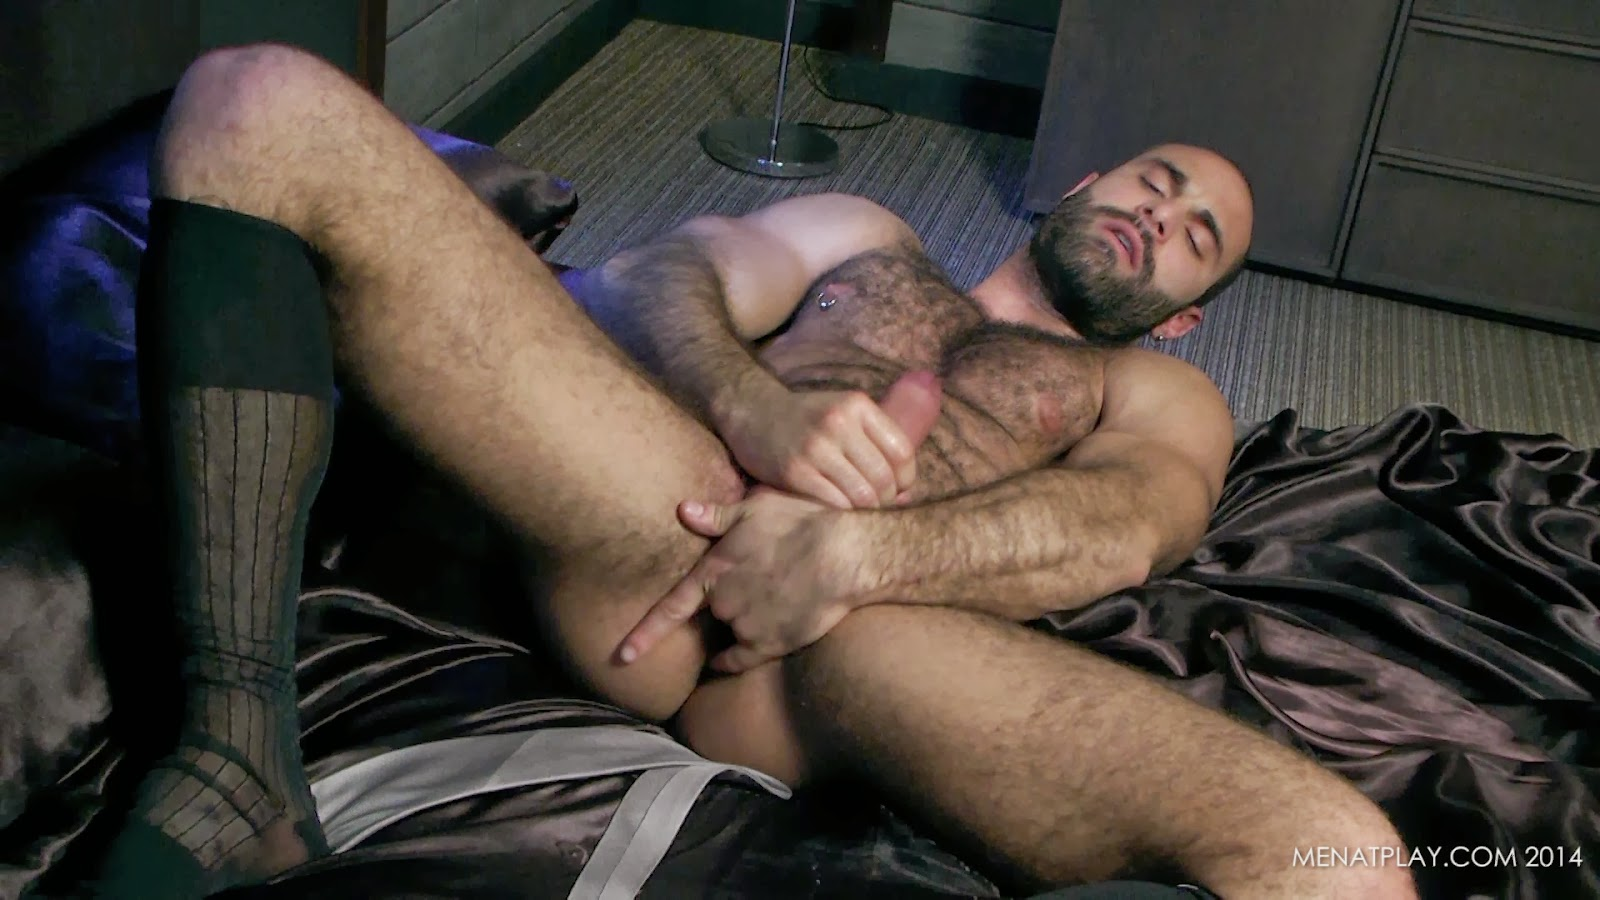 Actor Porno Gay Paco And Tim paco gay men at play porn - sex porn images